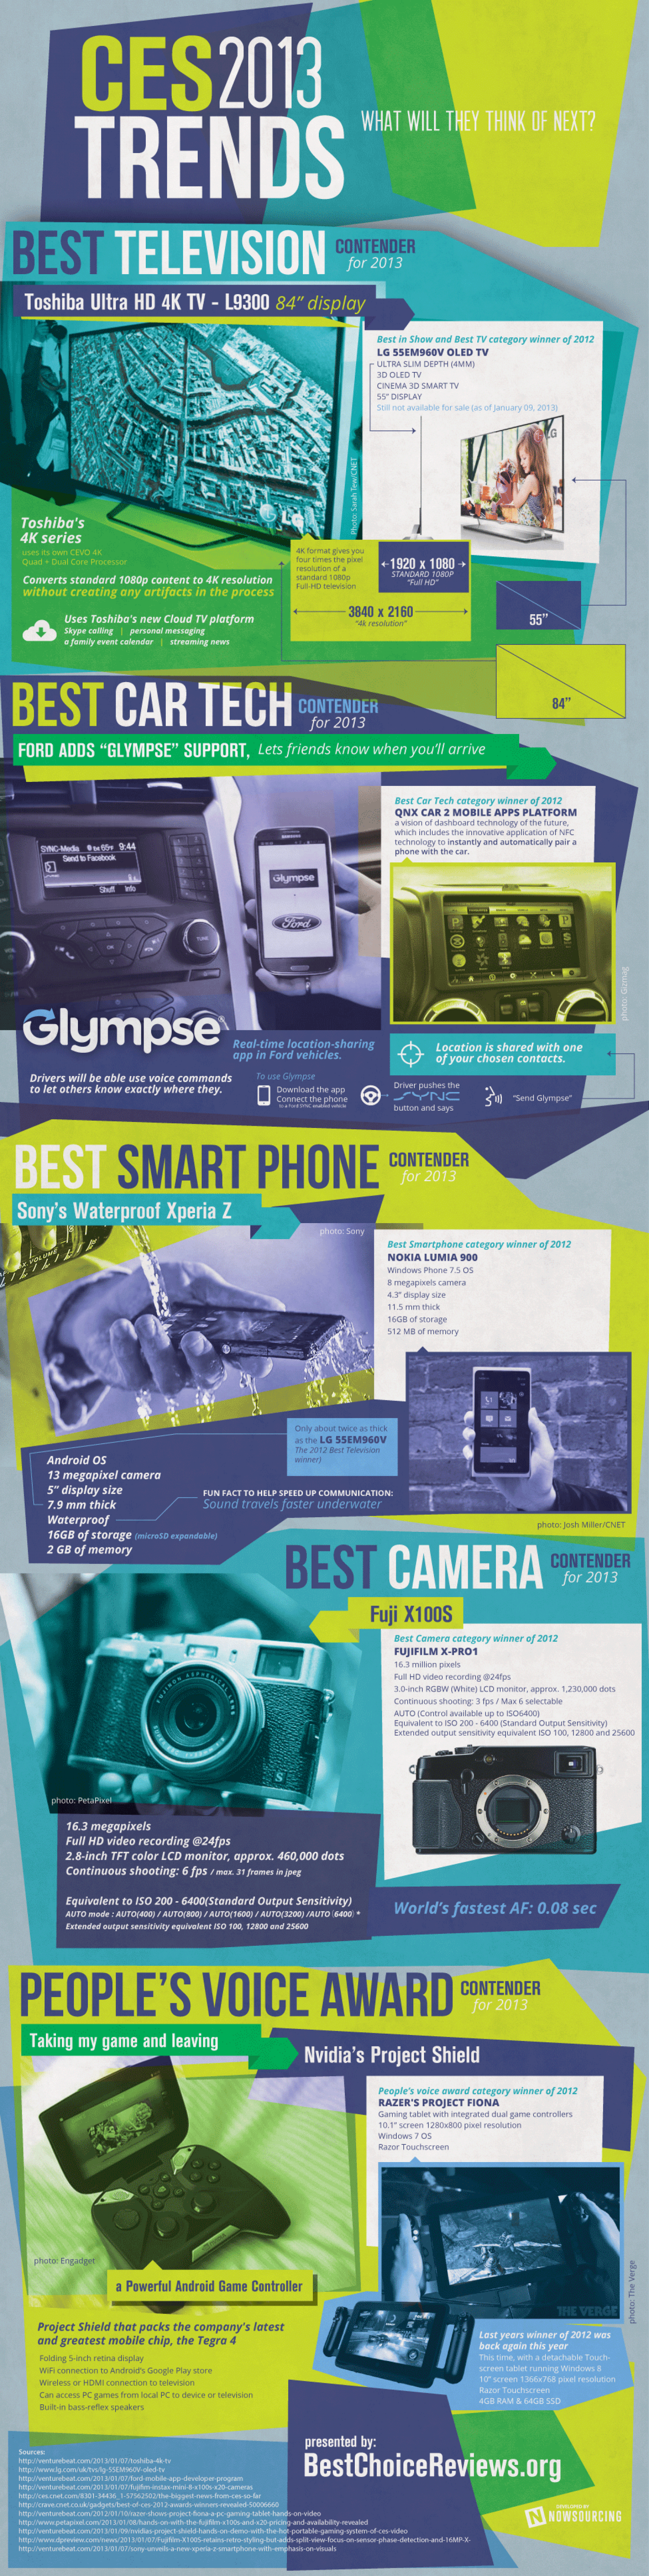 CES Trends 2013 Infographic